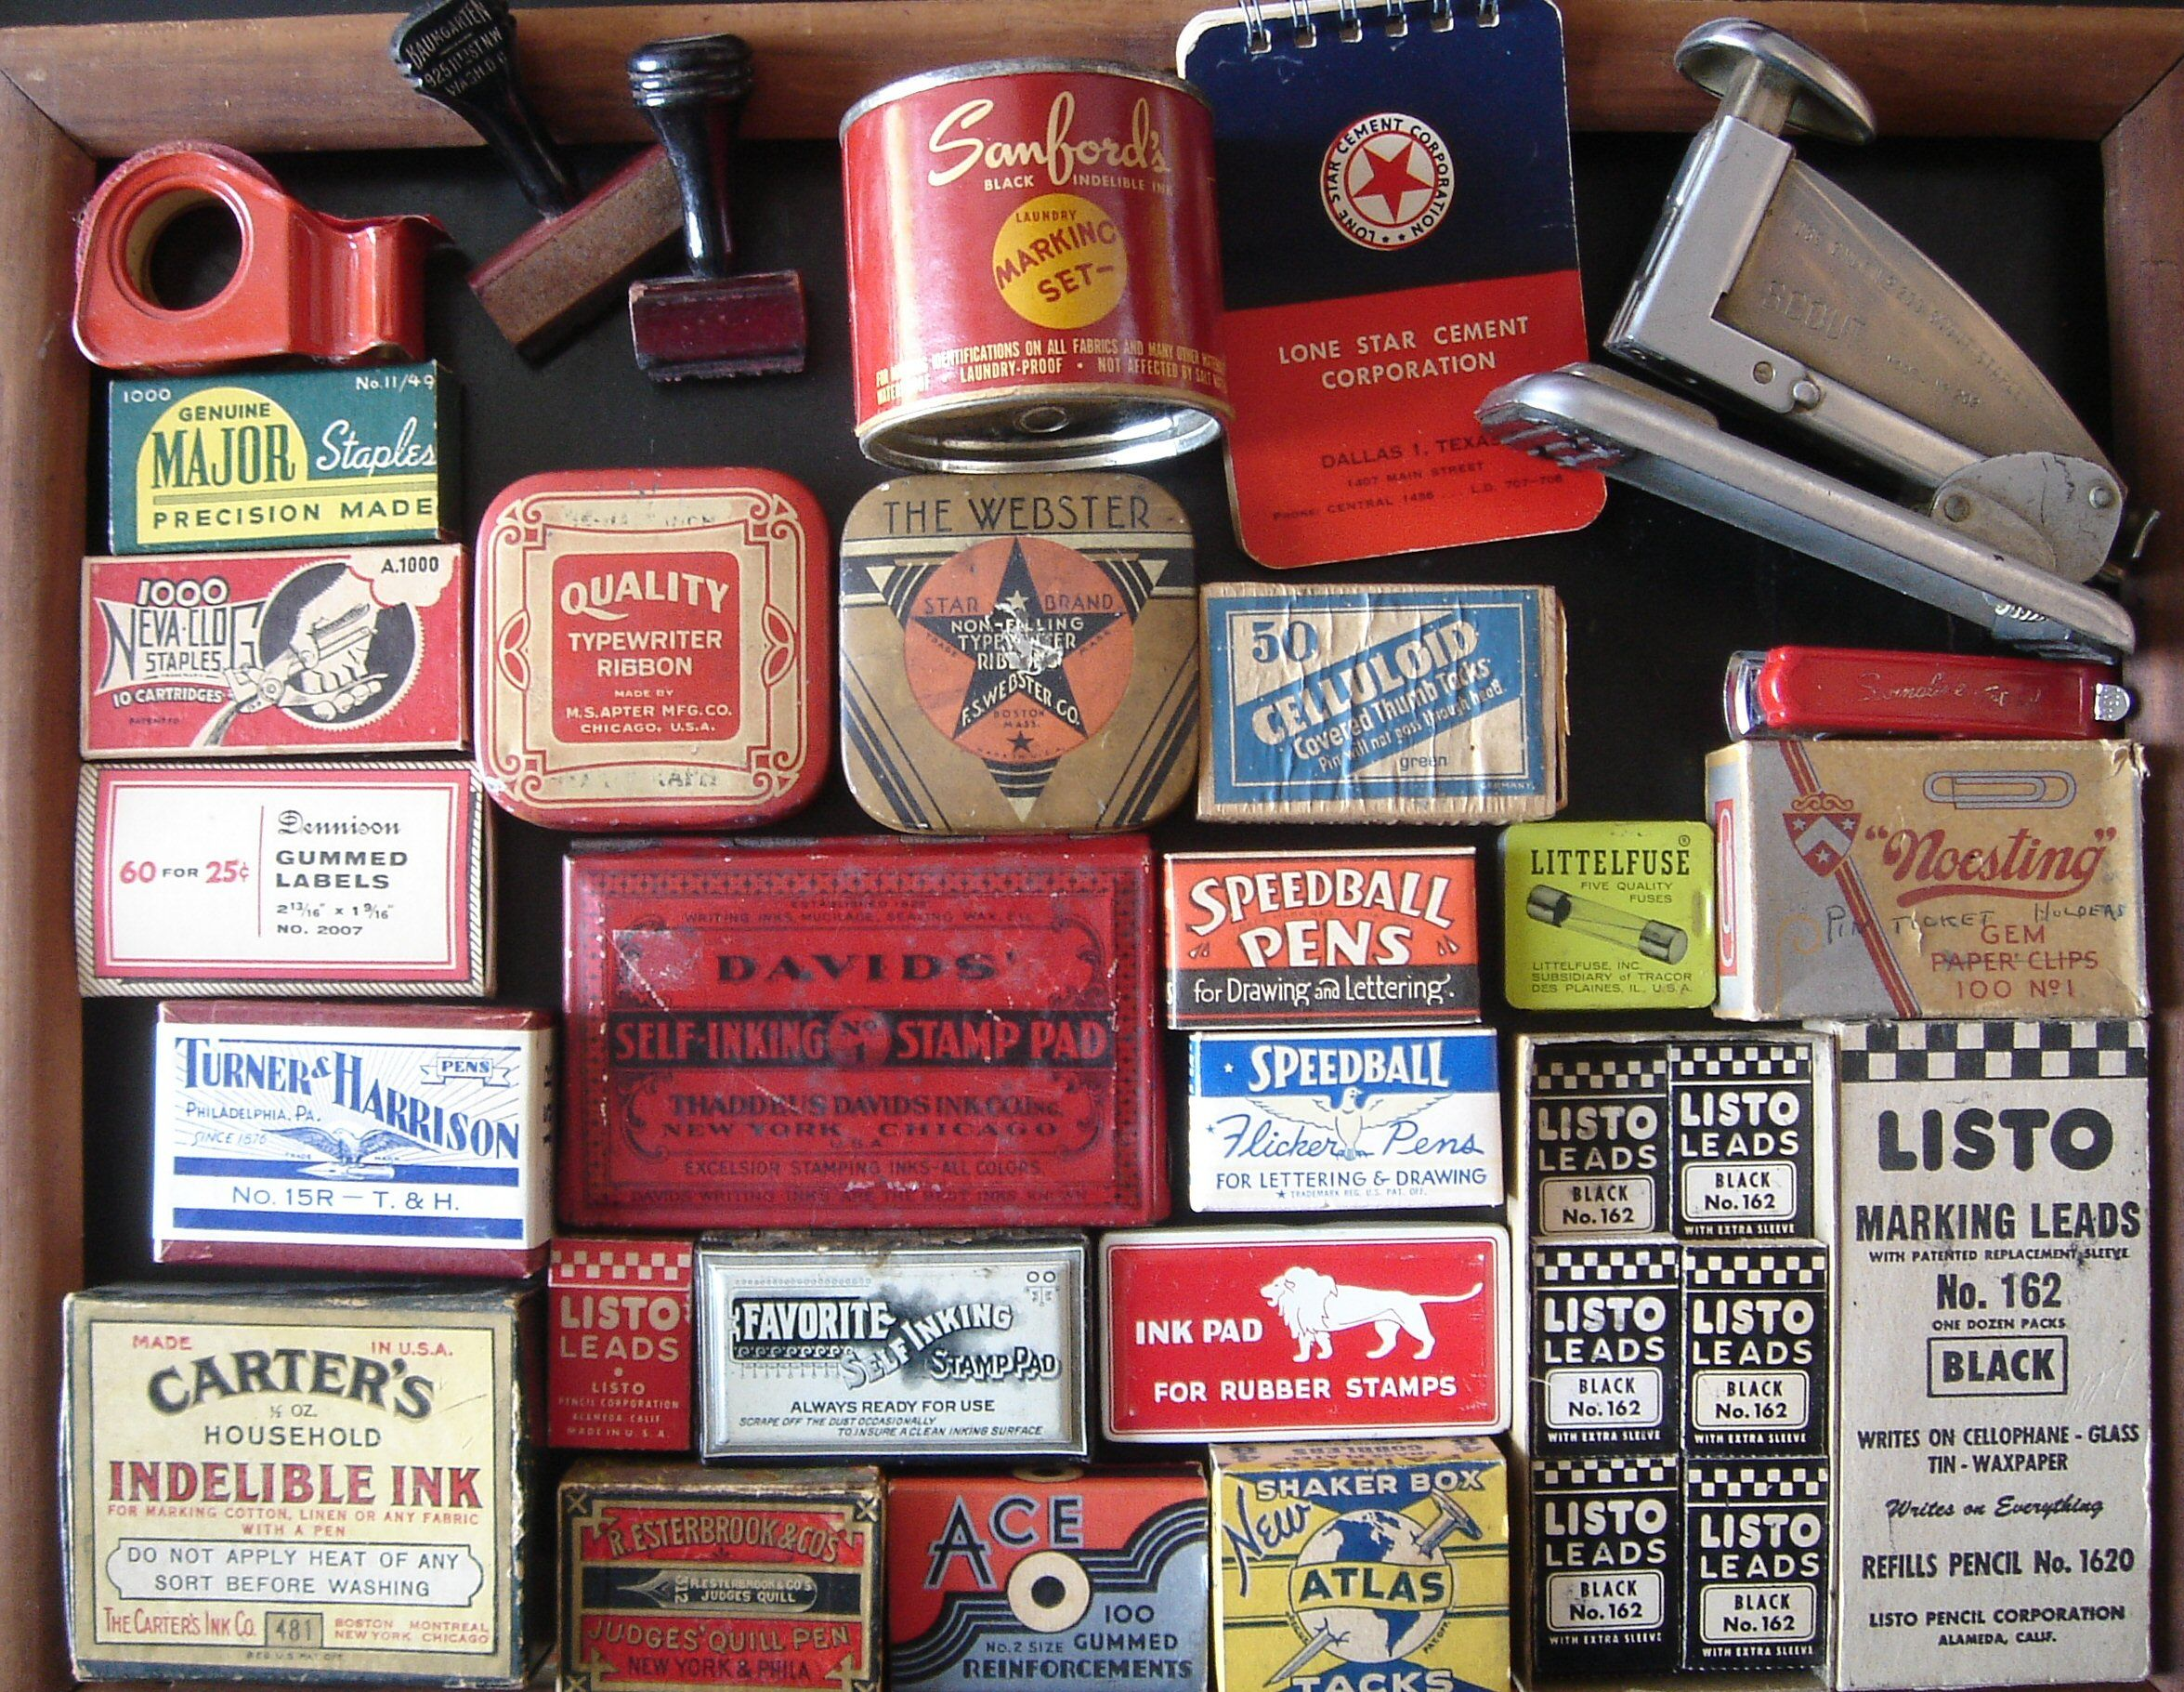 5e8152f84e48d Vintage office supplies | Vintaged | Vintage office, Vintage ...